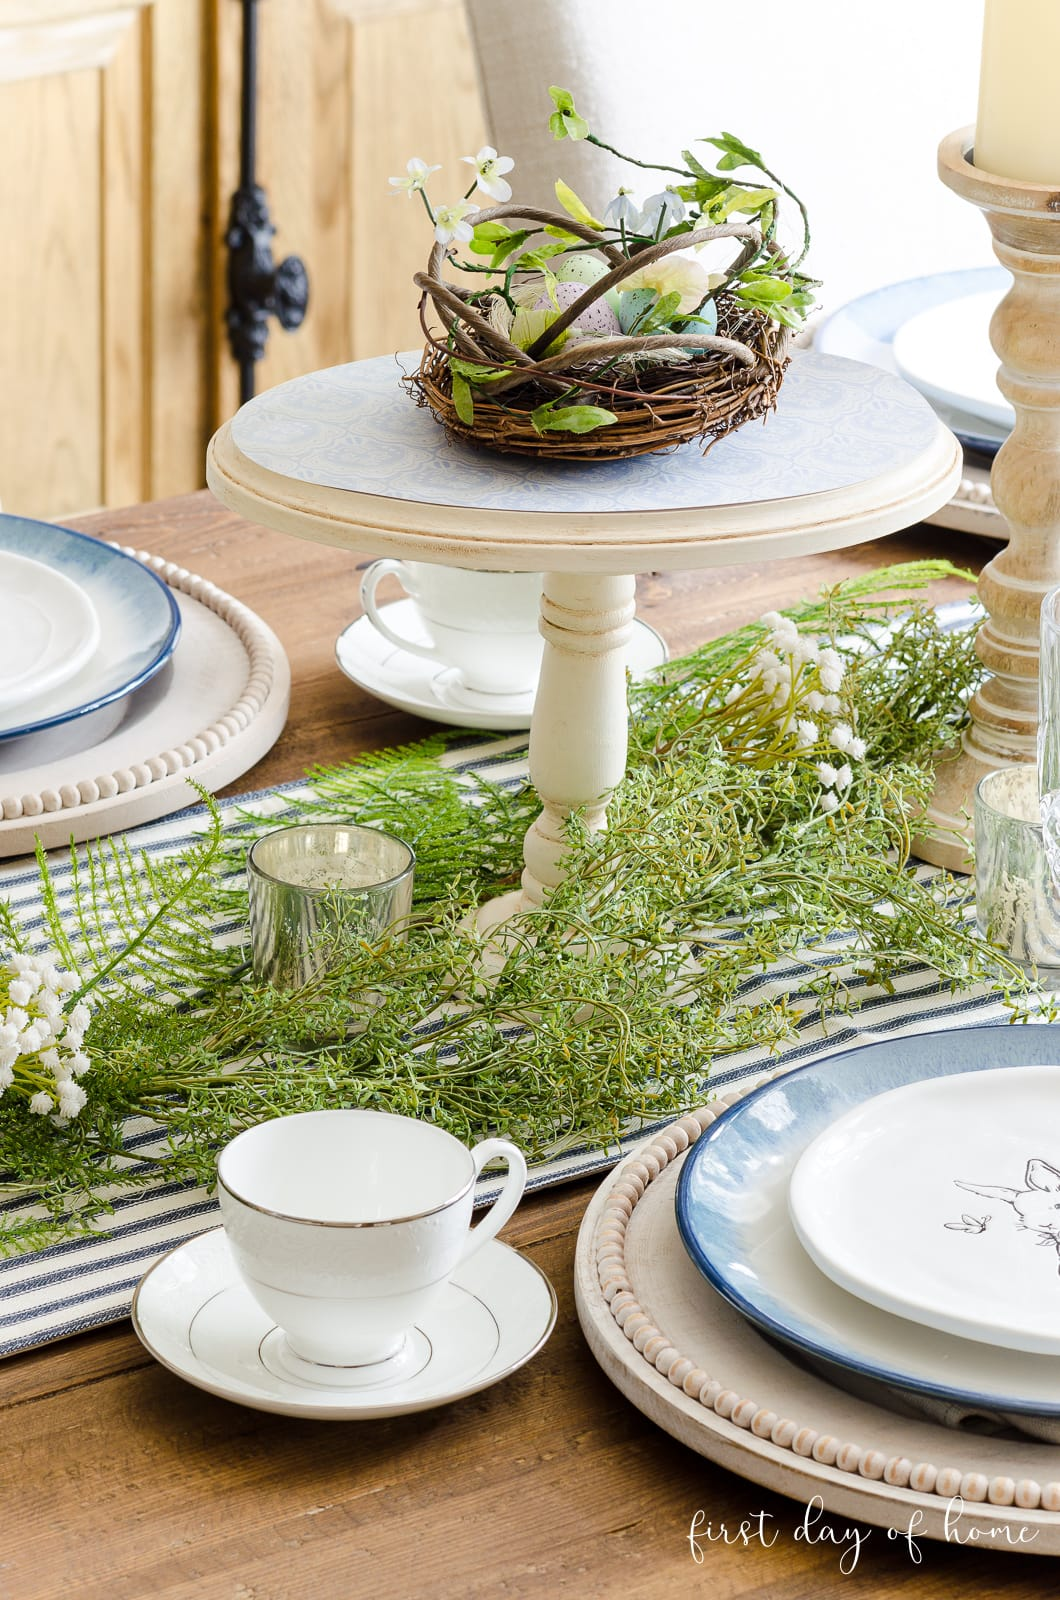 DIY cake stand with nest on top as spring table centerpiece with greenery